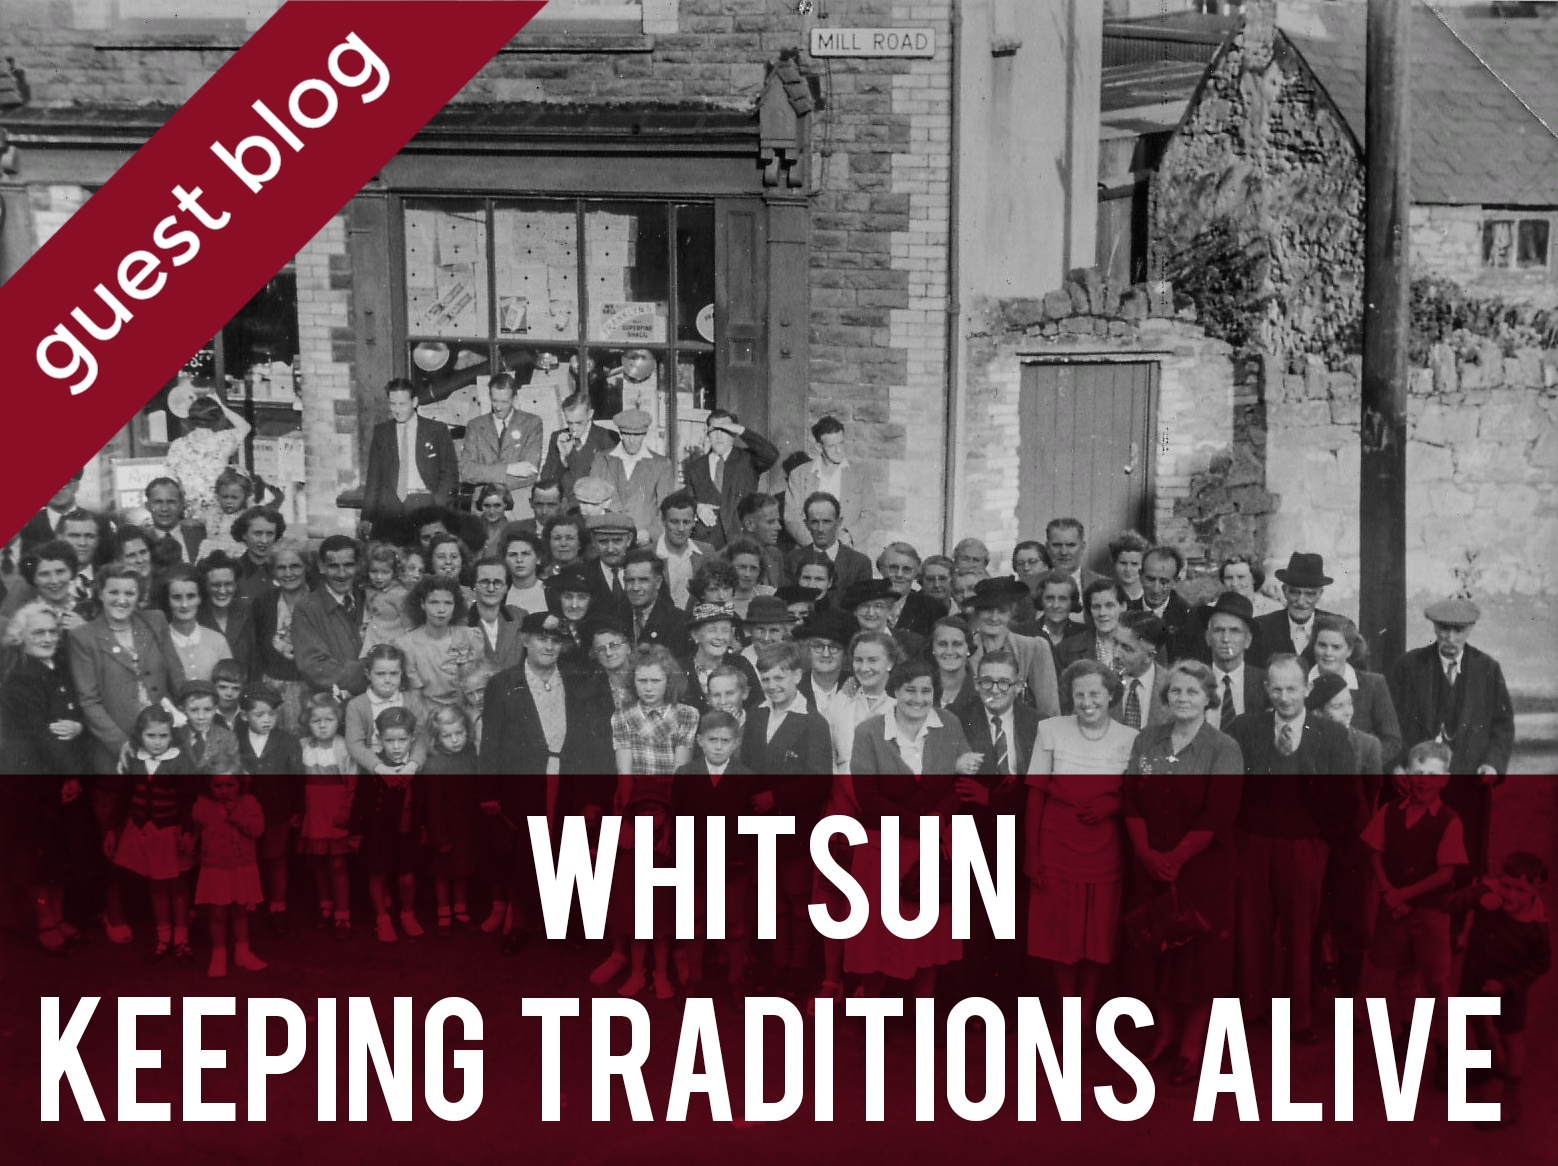 Whitsun Keeping Traditions Alive header